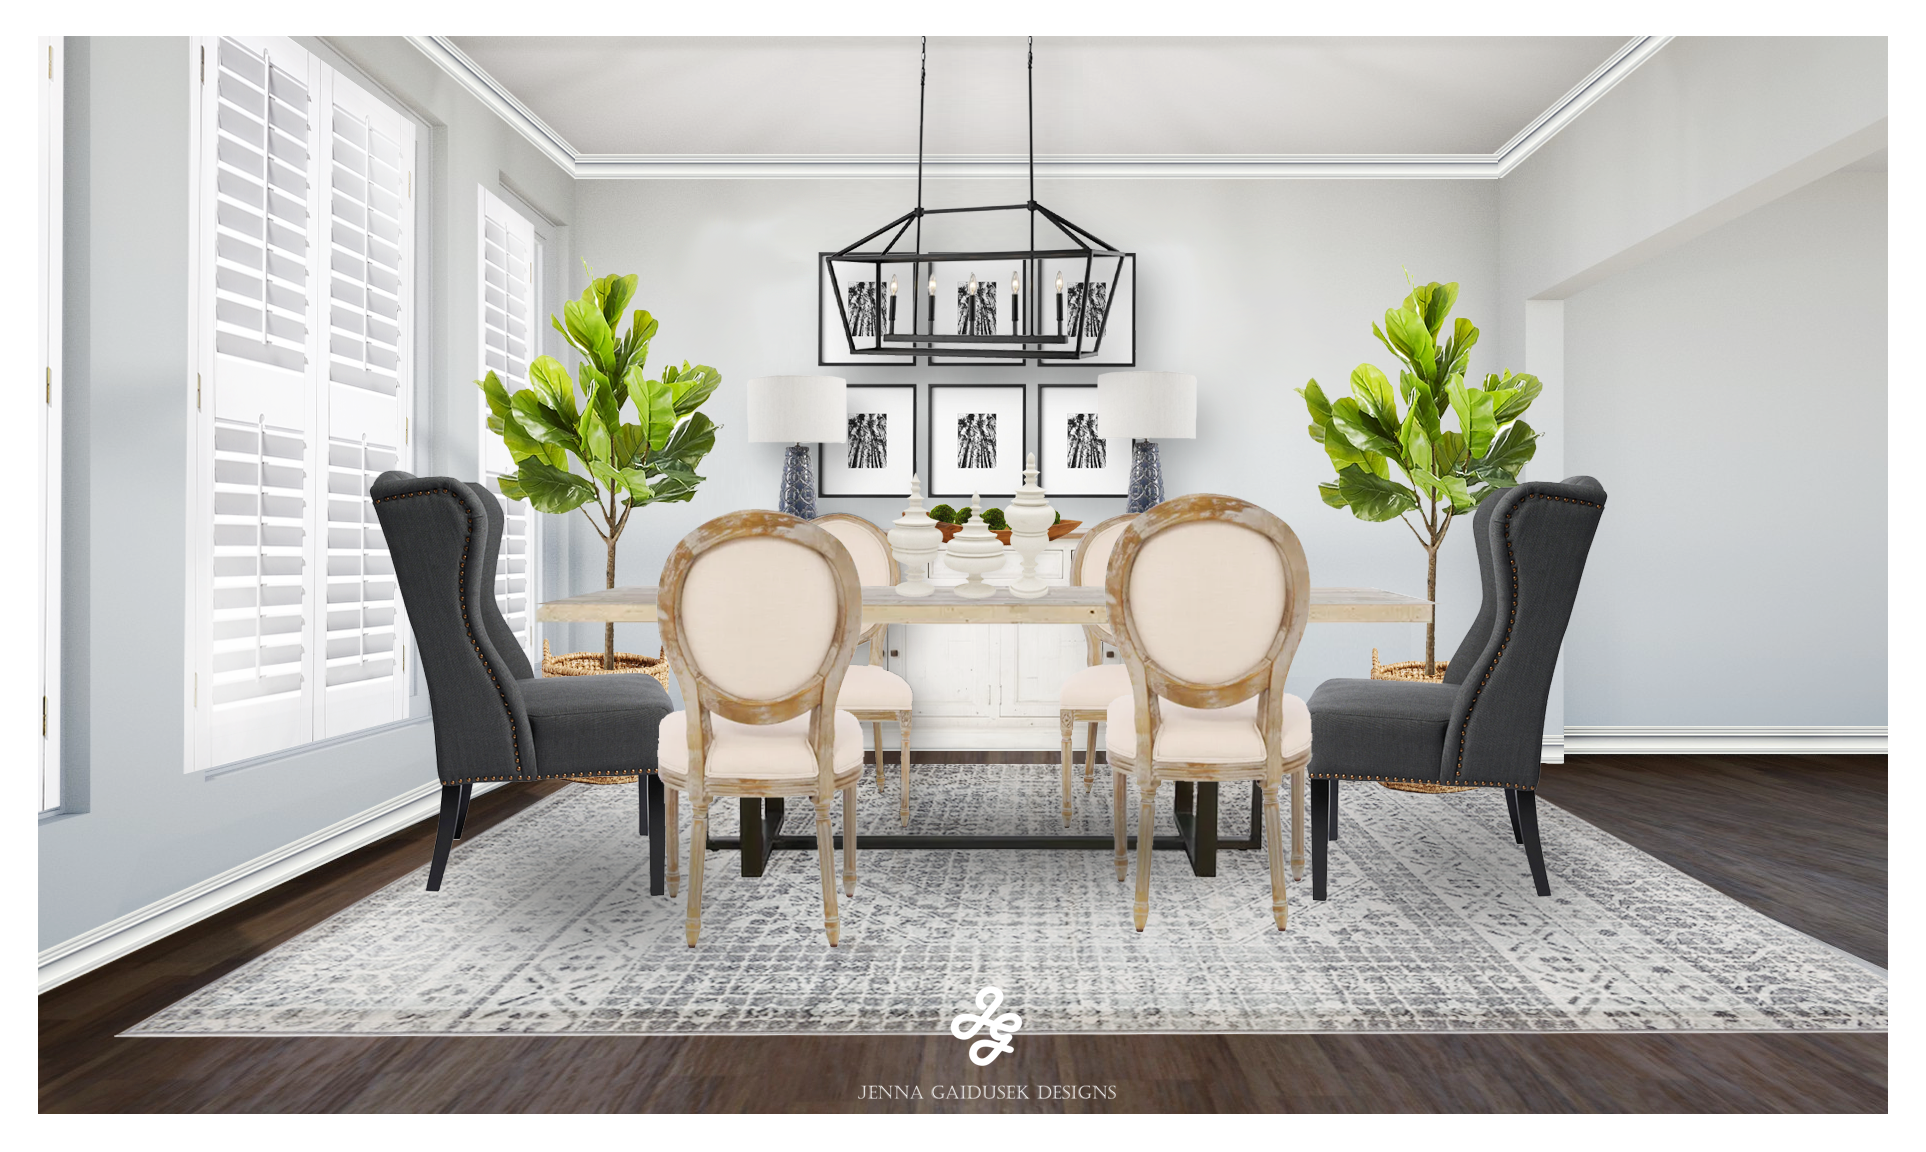 eDesign Services - If you are needing help with your open concept spaces- let's talk about your space! I collaborate with clients in the US and Canada all online. By taking your inspiration (that I KNOW you already have saved to your Pinterest or Instagram), I put together a cohesive design for your space that is tailored to you and your spouce's personal design style. I do all of this within your budget using the pieces you may want to hang onto as well.